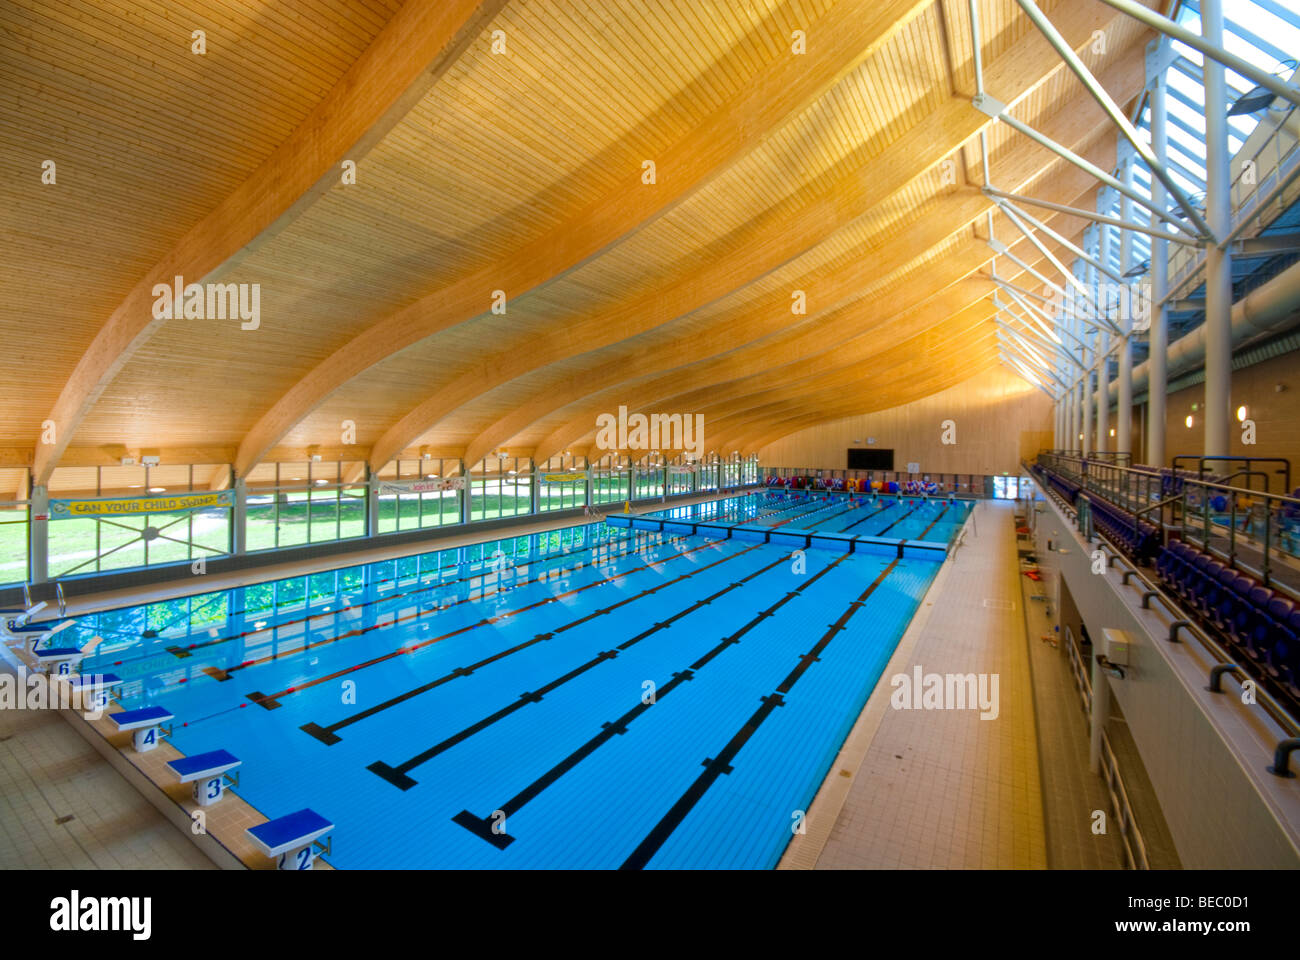 Olympic Swimming Pool Indoor Stock Photos Olympic Swimming Pool